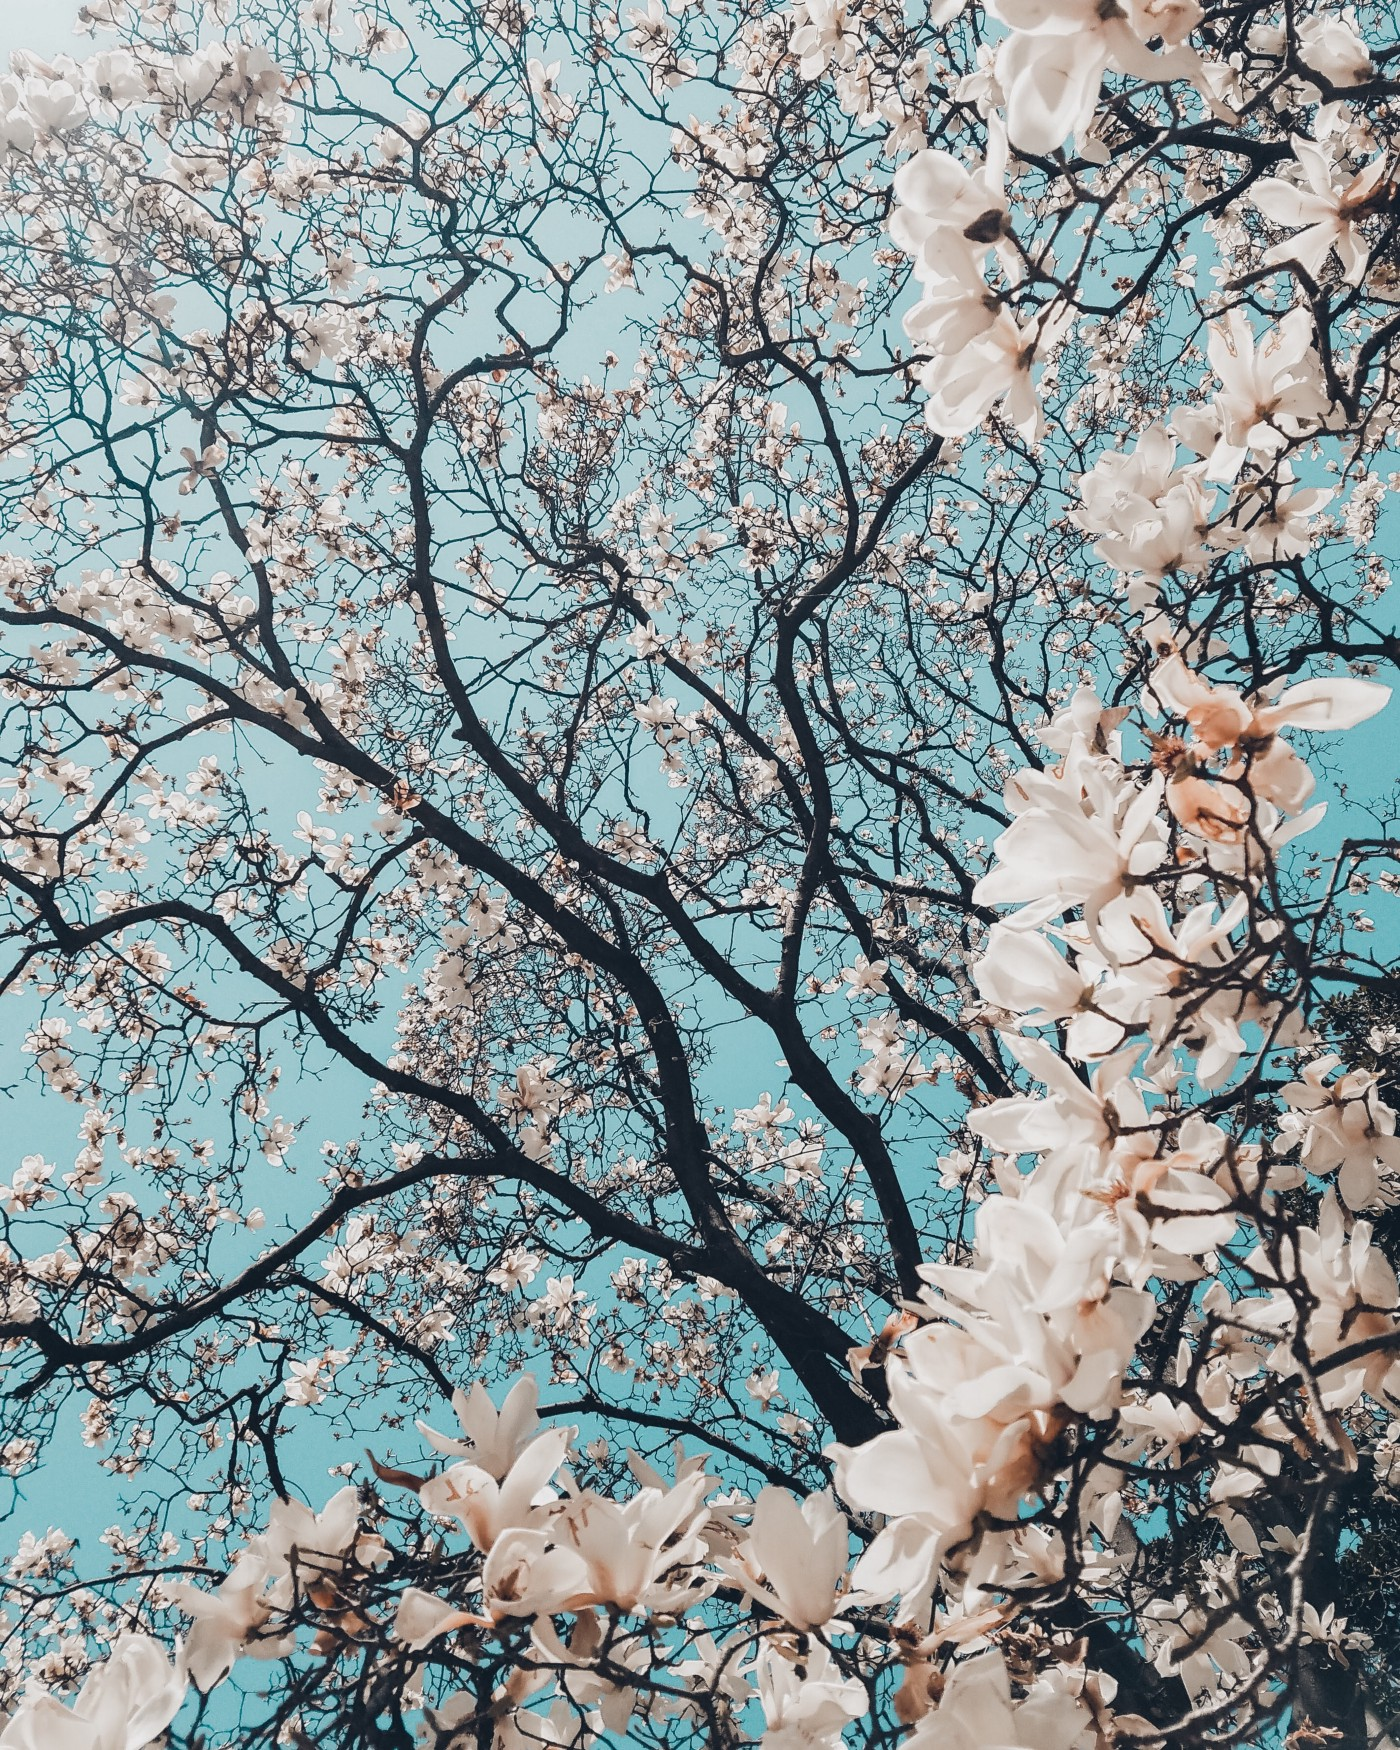 Cherry blossoms on branches (close up).